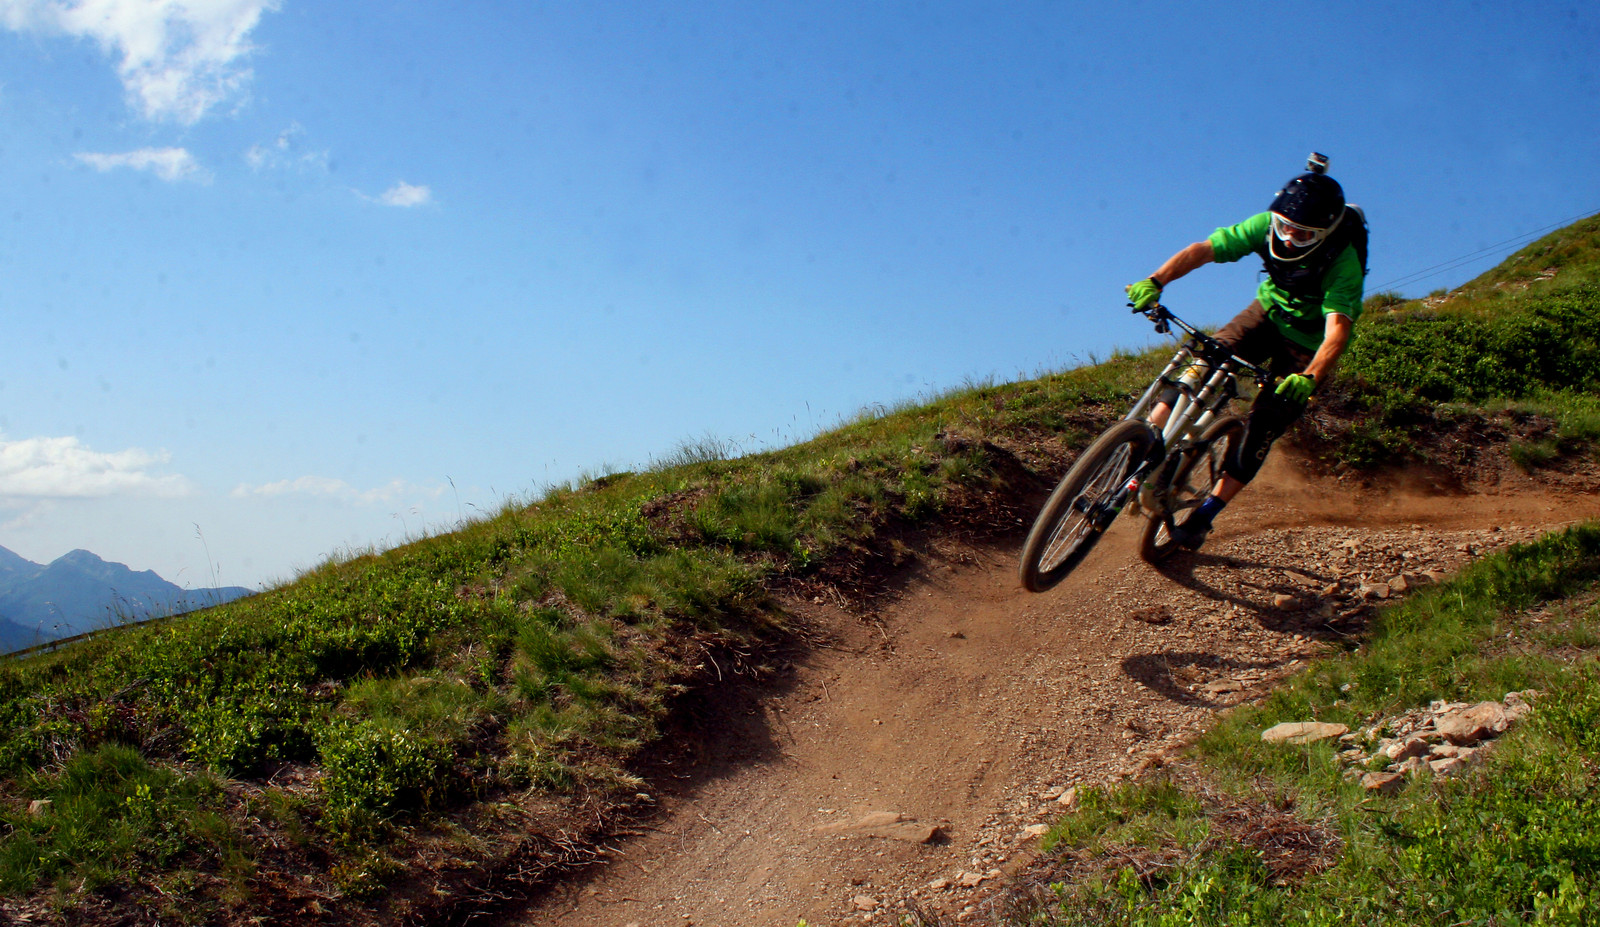 Bike Circus - The Gap - Mountain Biking Pictures - Vital MTB